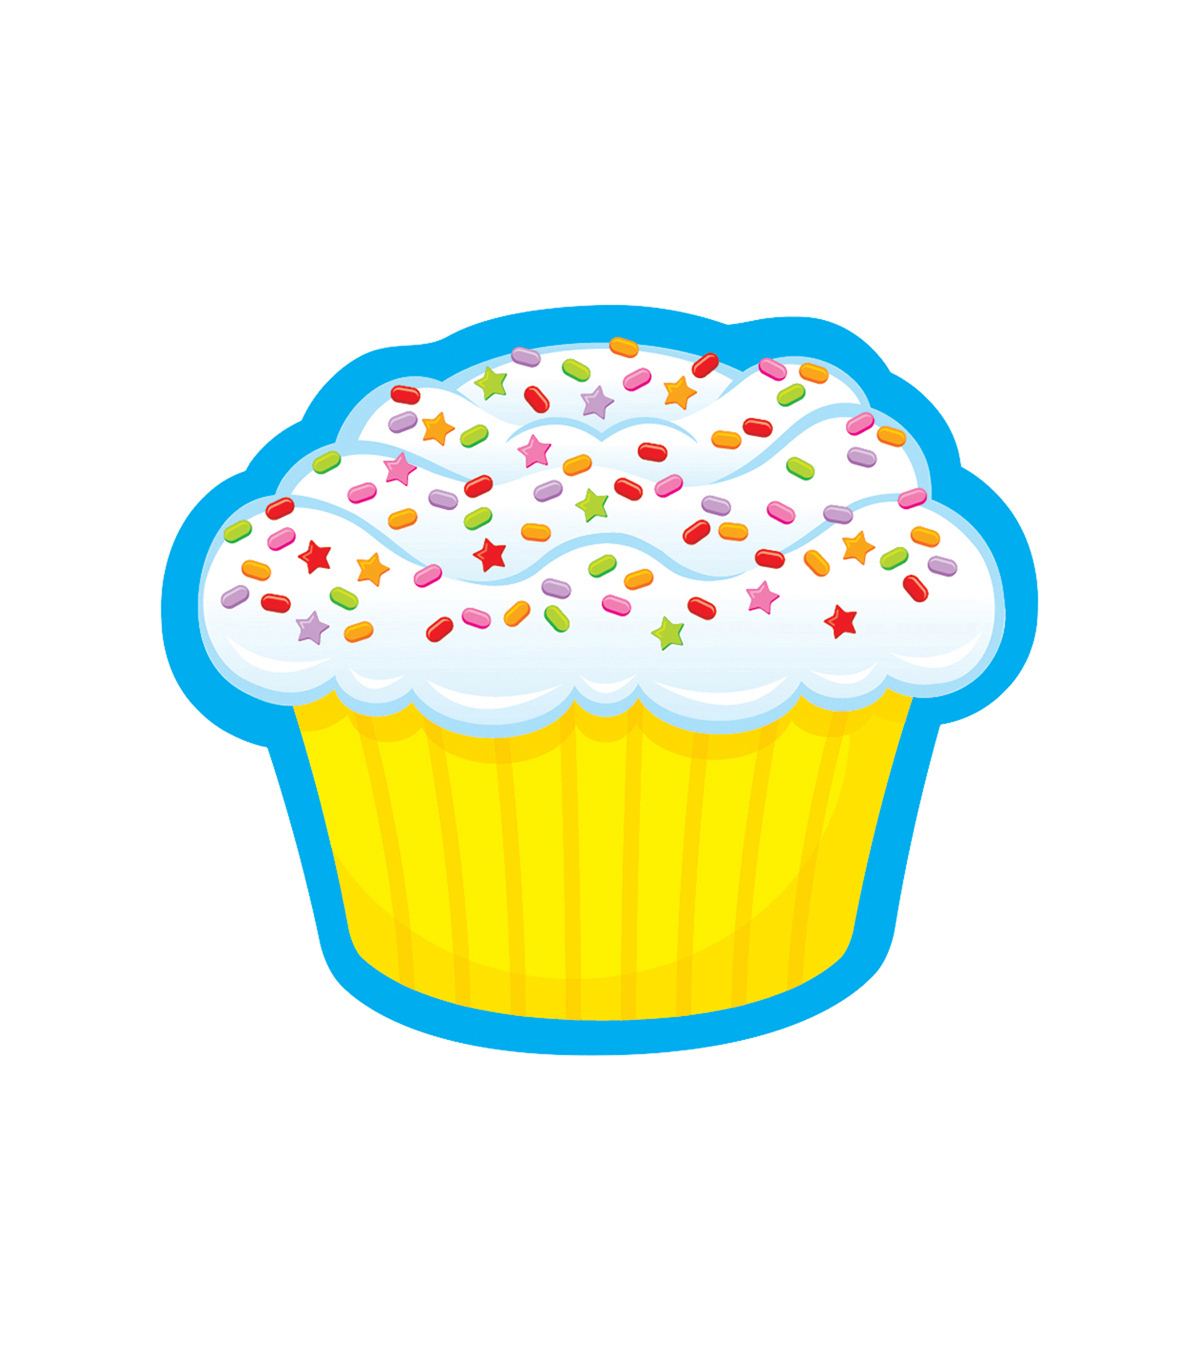 Trend Enterprises, Inc. Confetti Cupcake Mini Accents, 36/Pack, 6 Packs